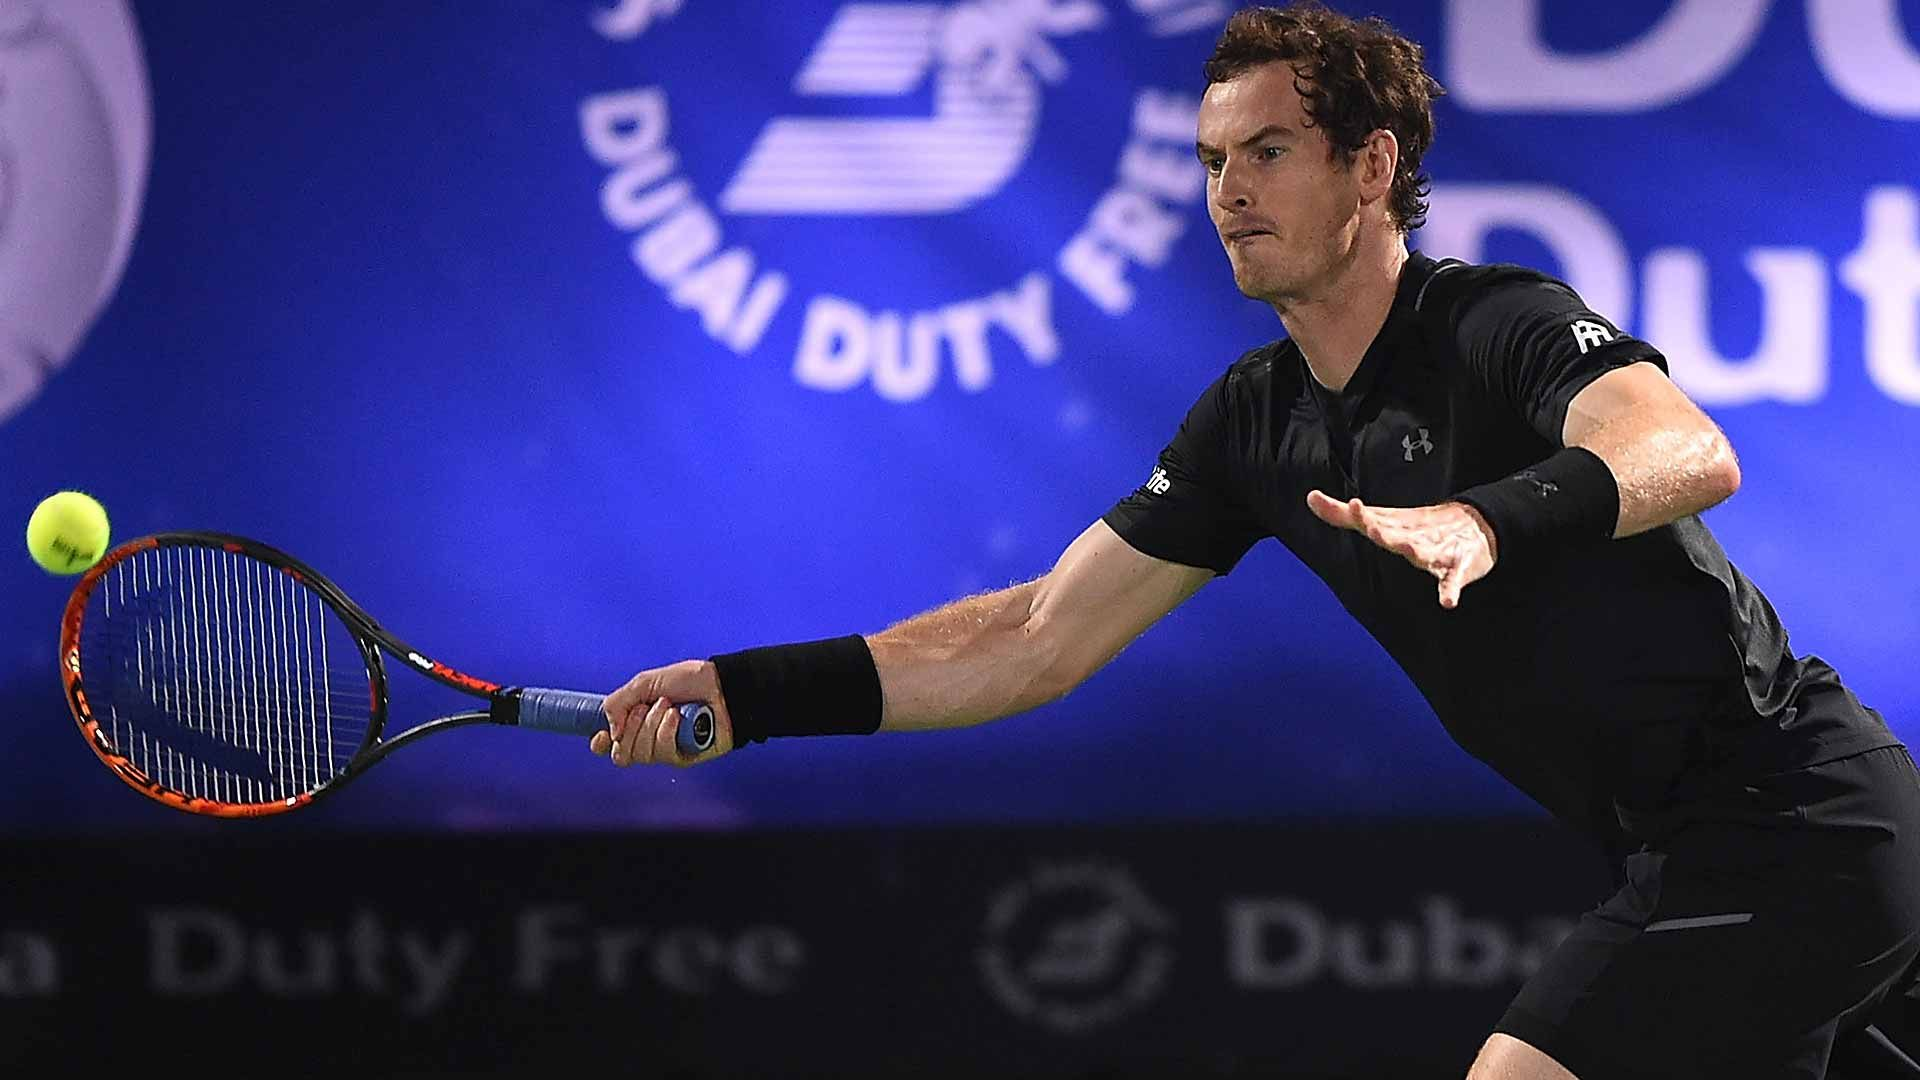 Andy Murray classe 1987, n.1 del mondo